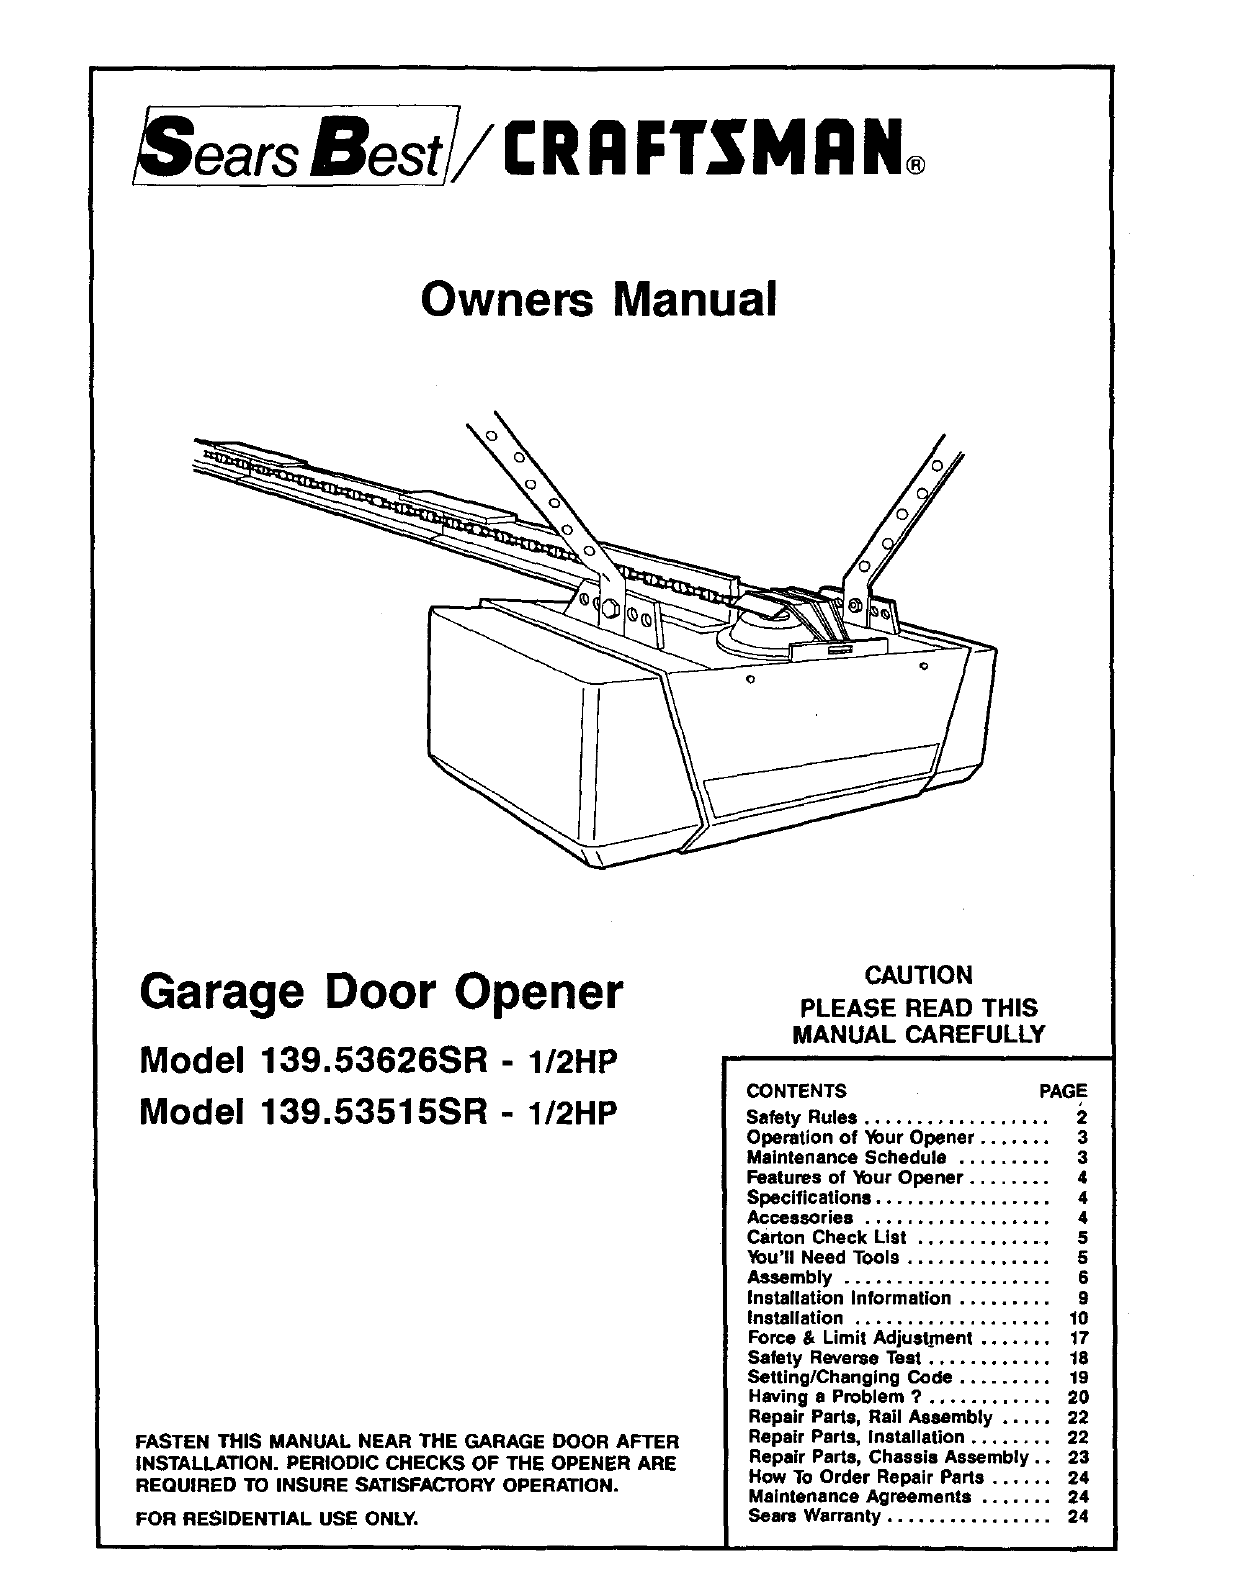 6e97bce9 7ab4 4d1d 9173 64e7868174d5 bg1?resize\=665%2C857 craftsman garage door opener 41a4315 7c wageuzi Basic Electrical Wiring Diagrams at bayanpartner.co